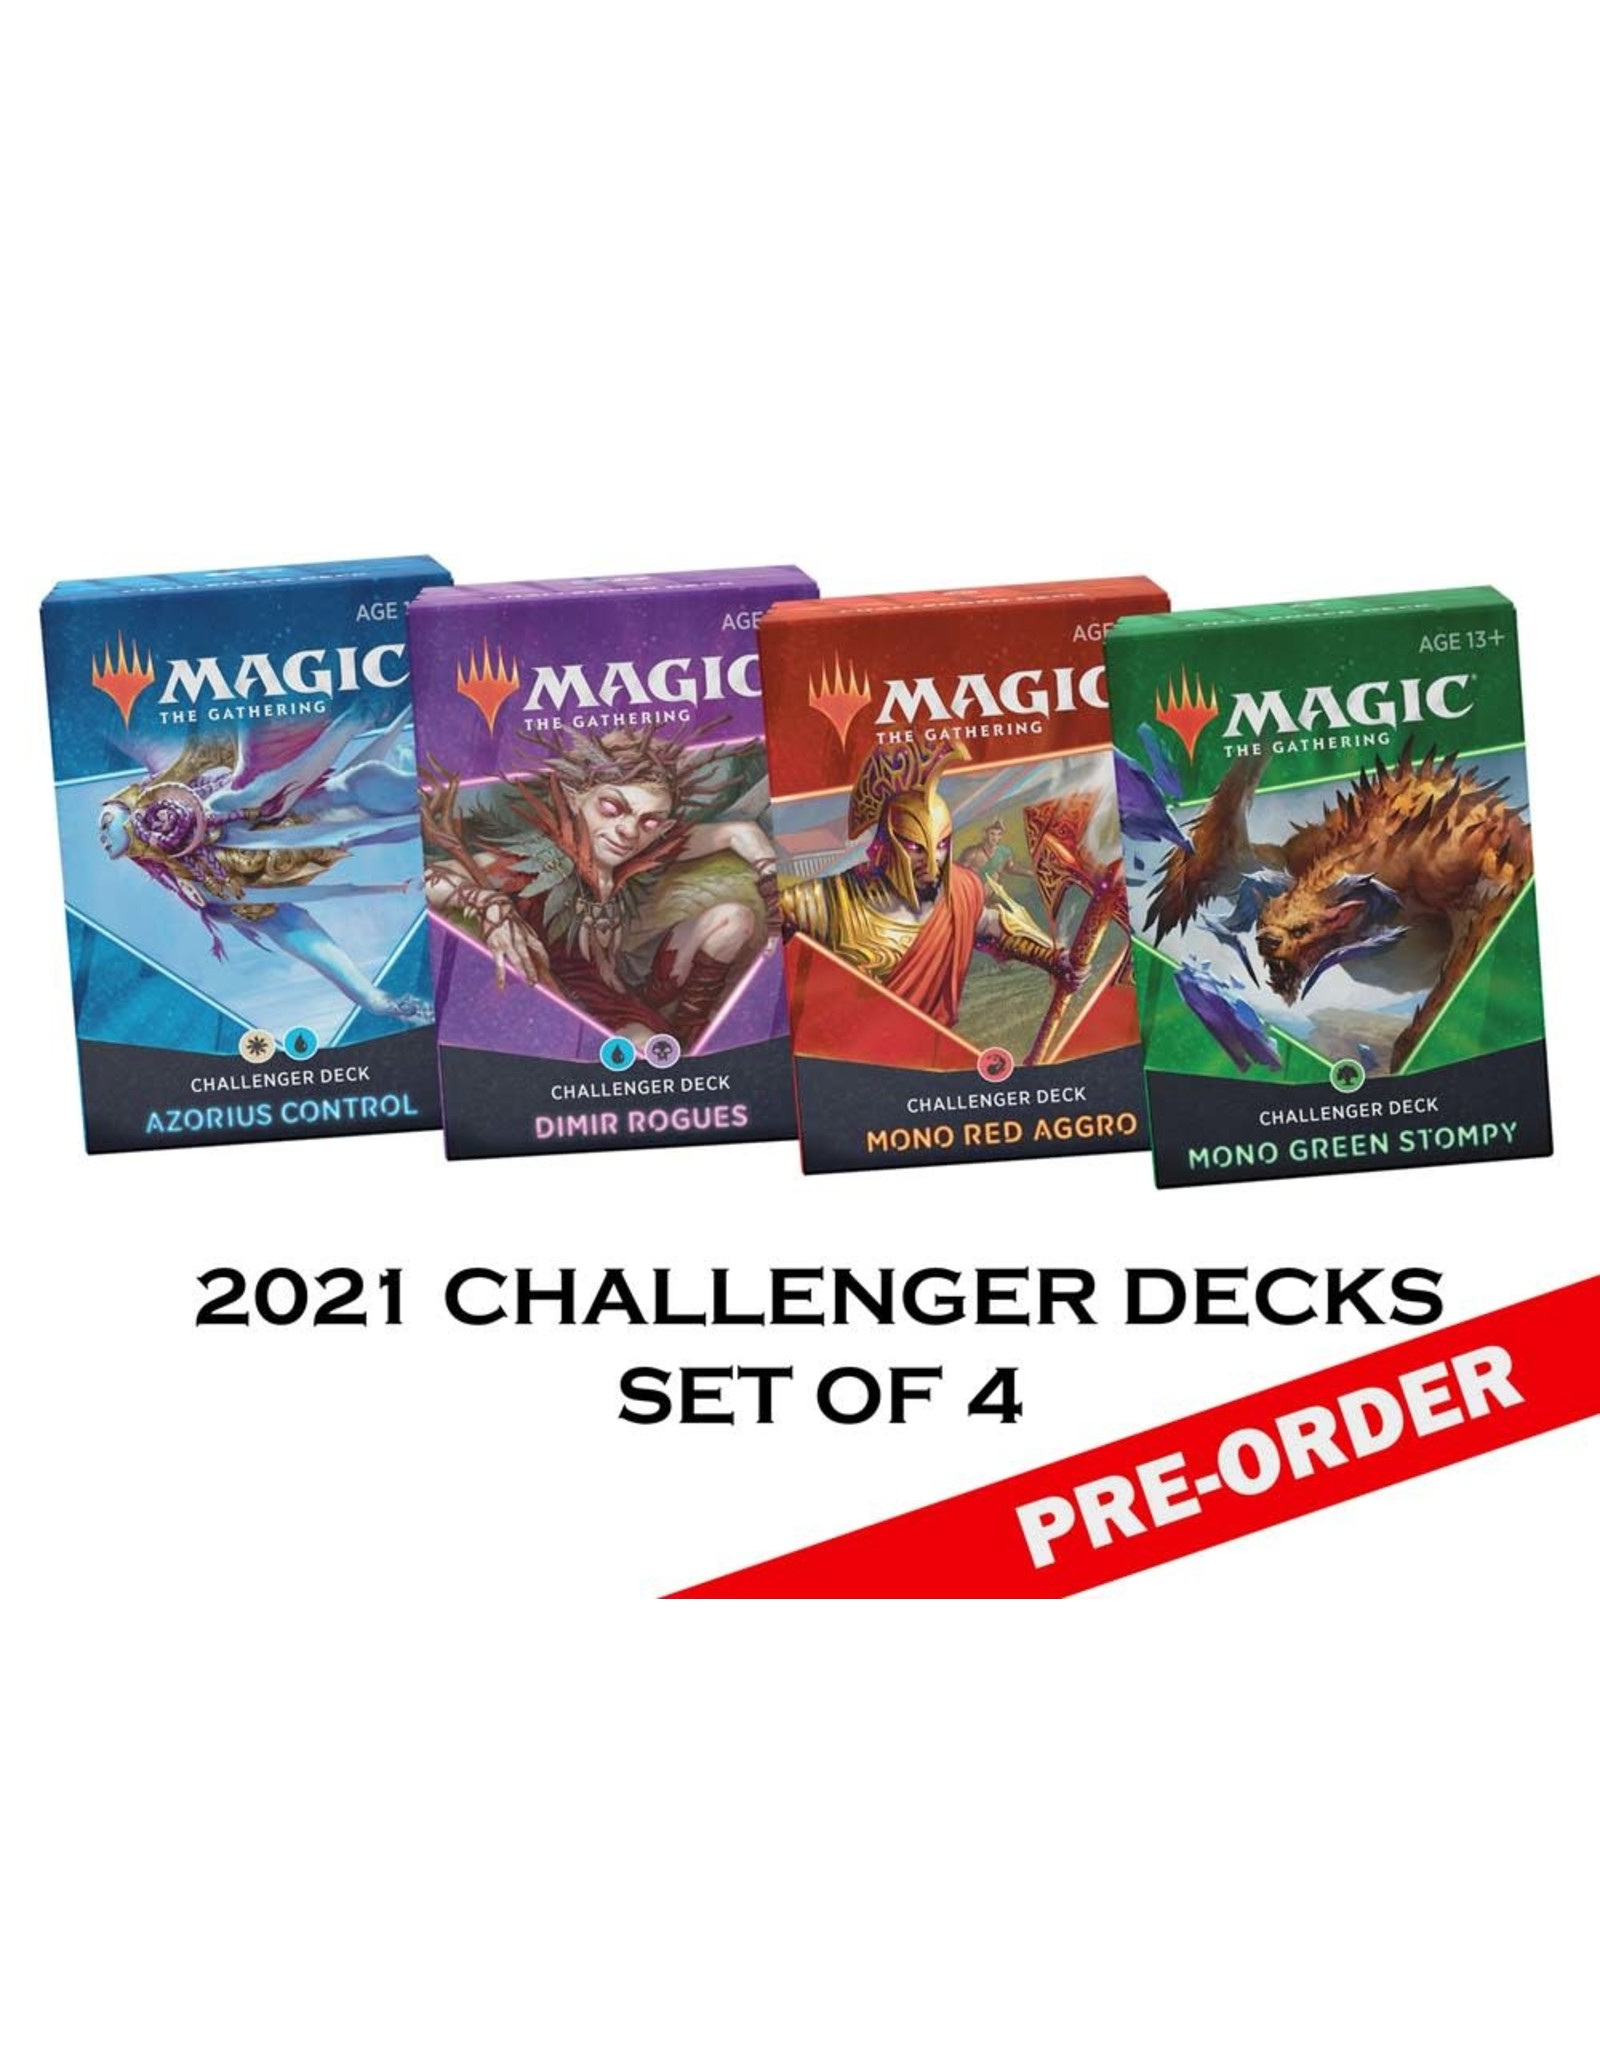 WIZARDS OF THE COAST MAGIC THE GATHERING CHALLENGER DECKS 2021 SET OF 4 PRE-ORDER